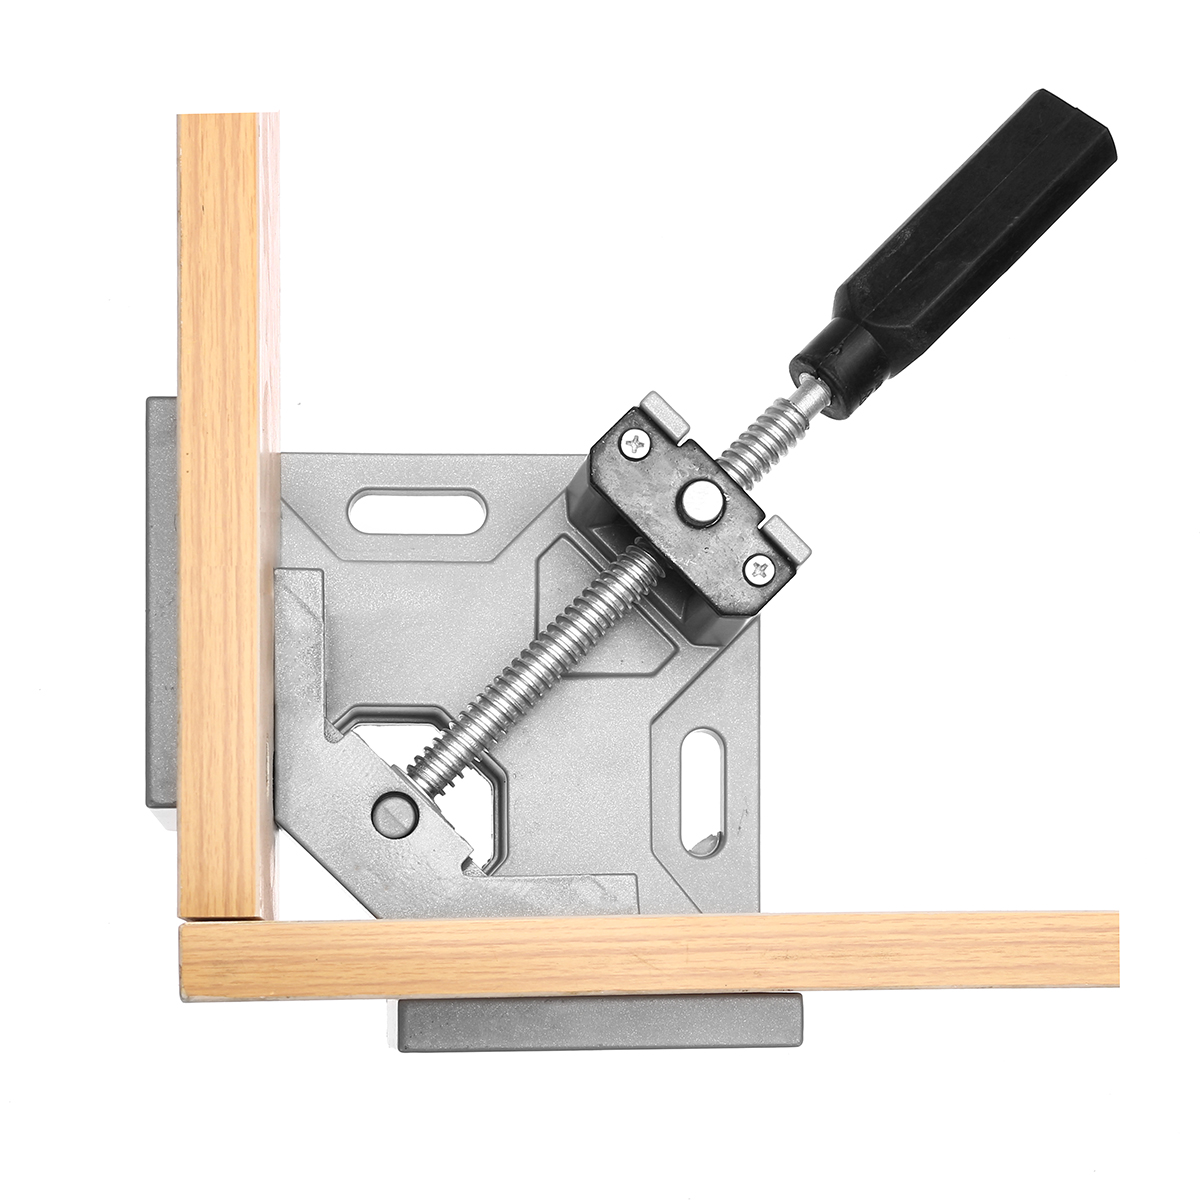 Drillpro Aluminum Alloy 90 Degree Right Angle Clamp Single Handle Corner Frame Clamp Clip Woodworking Tools 9